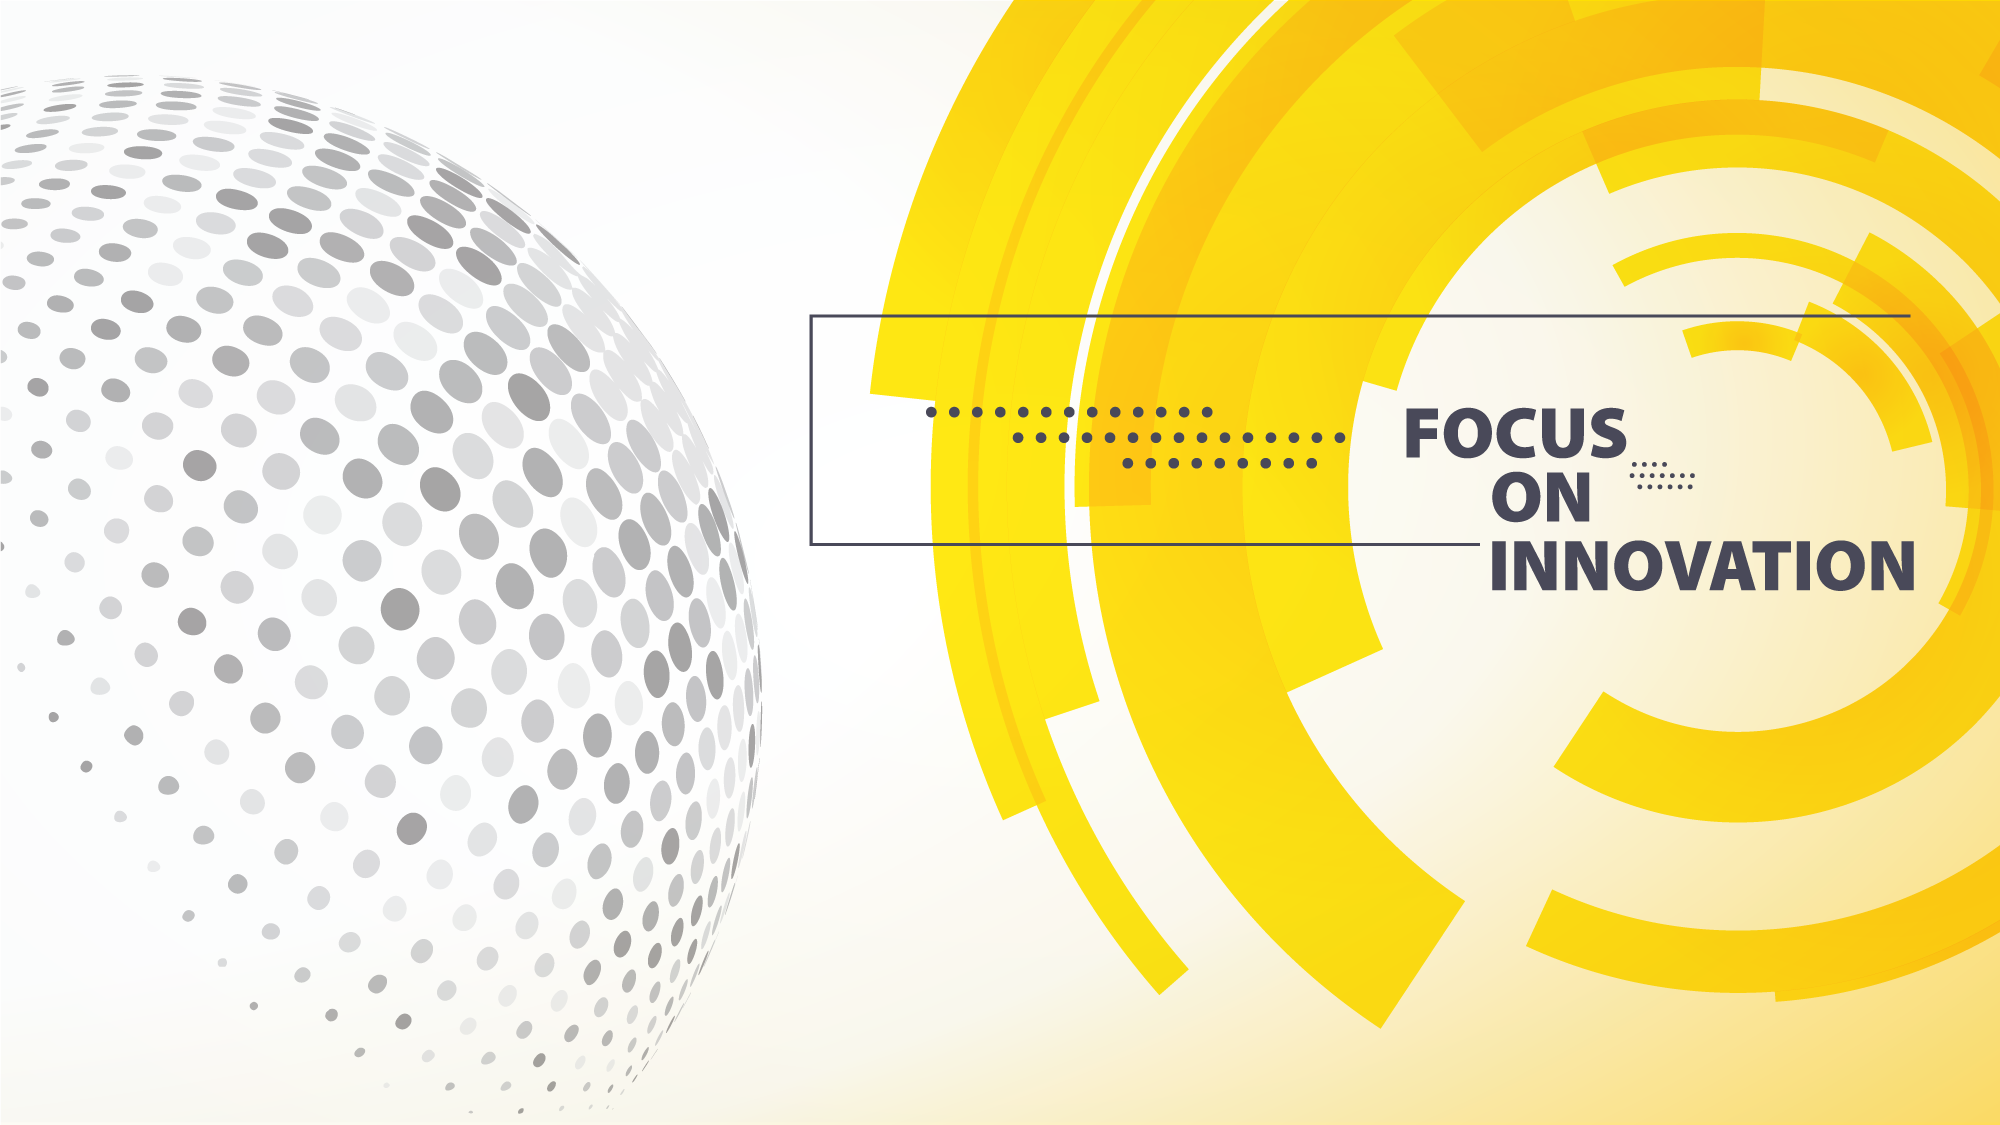 Focus on Innovation at the Educational Research Institute